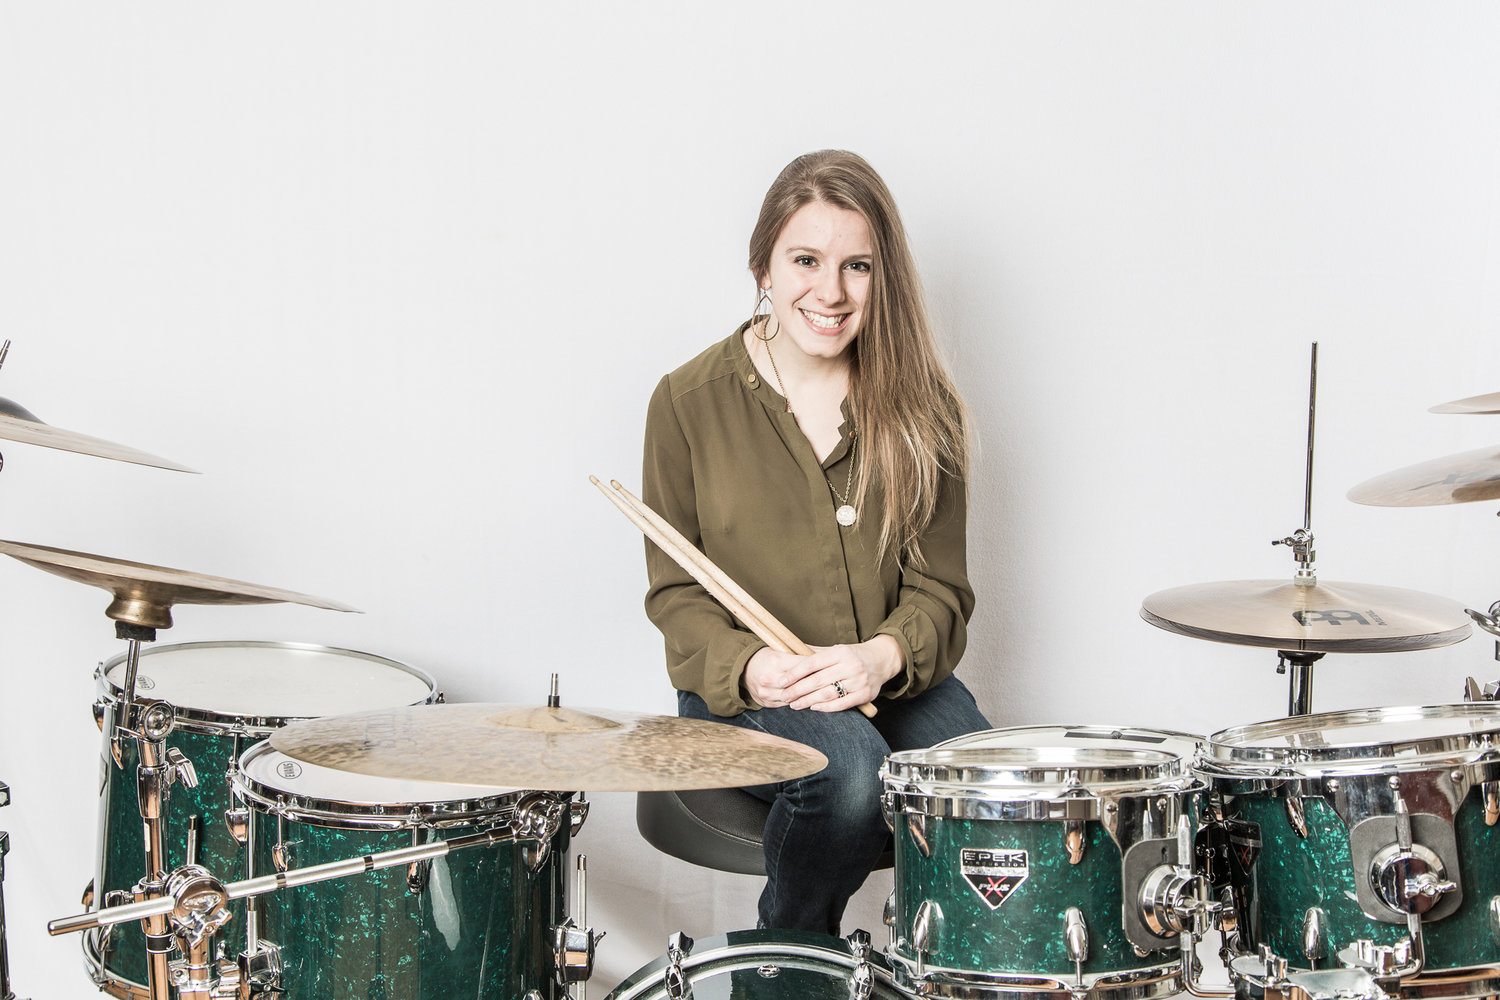 """Hannah Stallings is a drum set player, percussionist, and educator based out of Nashville, TN. She works as a freelance drum set player the live and studio settings, and instructs privately.  As a 12-year-old, Hannah had no idea what instrument to play in the middle school band. She had been taking piano lessons since the ripe age of 4, but piano was not an option in concert band. One day, her dad asked her, """"What's your favorite song?"""" She proceeded to play  Let's Get Loud  by Jennifer Lopez on the boombox, and when asked why, she replied, """"I like the beat"""". It was then obvious to Hannah's dad; she should try percussion.  Since then, Hannah has completed a Diploma in Music Performance from  Grant MacEwan University  in her hometown Edmonton, Canada in 2010, and a Bachelors in Music Education from  Berklee College of Music  in Boston, MA in 2014. She has performed, toured, and recorded internationally with a number of artists, notably CCM songwriter Ginny Owens, R&B/pop artists Marc Evan Diaz and Ashe, blues/Americana band Swingin Hammers, and Nashville's premiere all-female country group Fading June. She also had appearances on ABC's  Nashville , Season 4.   Hannah also loves to teach, and she cherishes seeing her students develop musically and experience the joy of learning and growing as a musician. Hannah has had experience in the public school system as both a substitute teacher K-12 and a Special Education Teachers Assistant K-5, instructed drum set and directed performance groups at the School of Rock in Nashville, TN, and has taught drum set privately since 2009. She has recently begun managing David Spencer Music Group in-home music lessons studio, based in Brentwood, TN."""